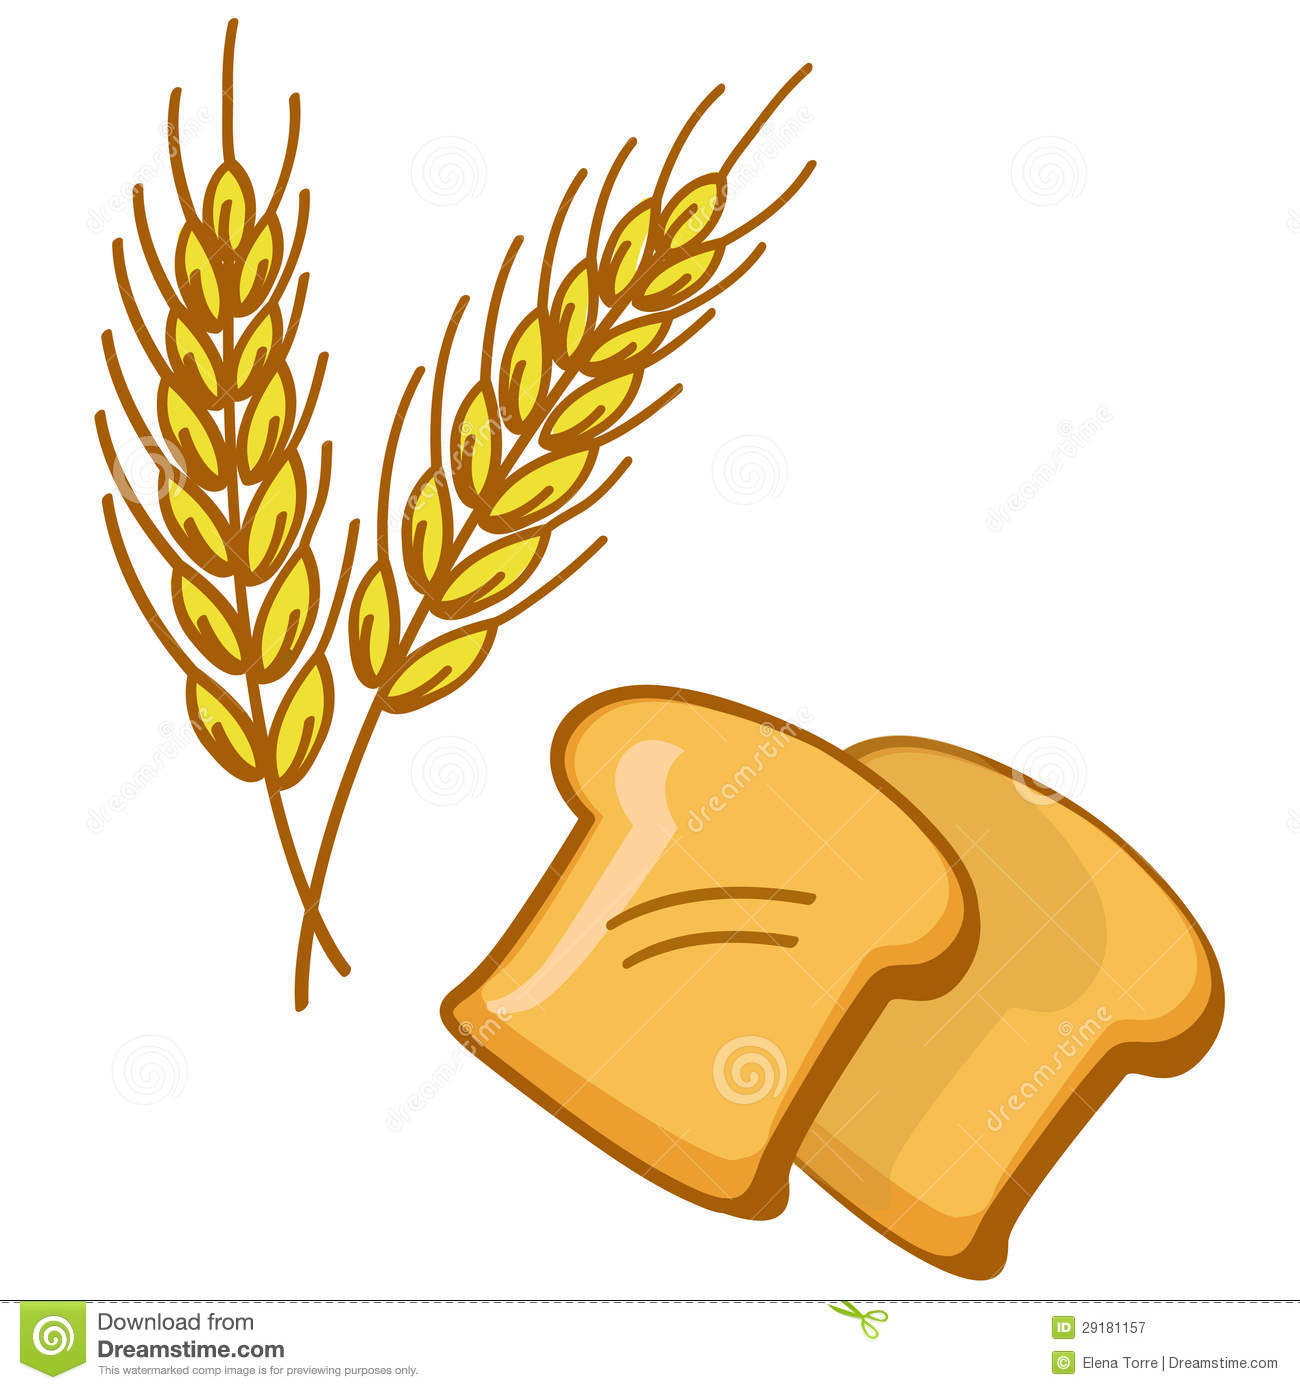 Wheat clipart #5, Download drawings